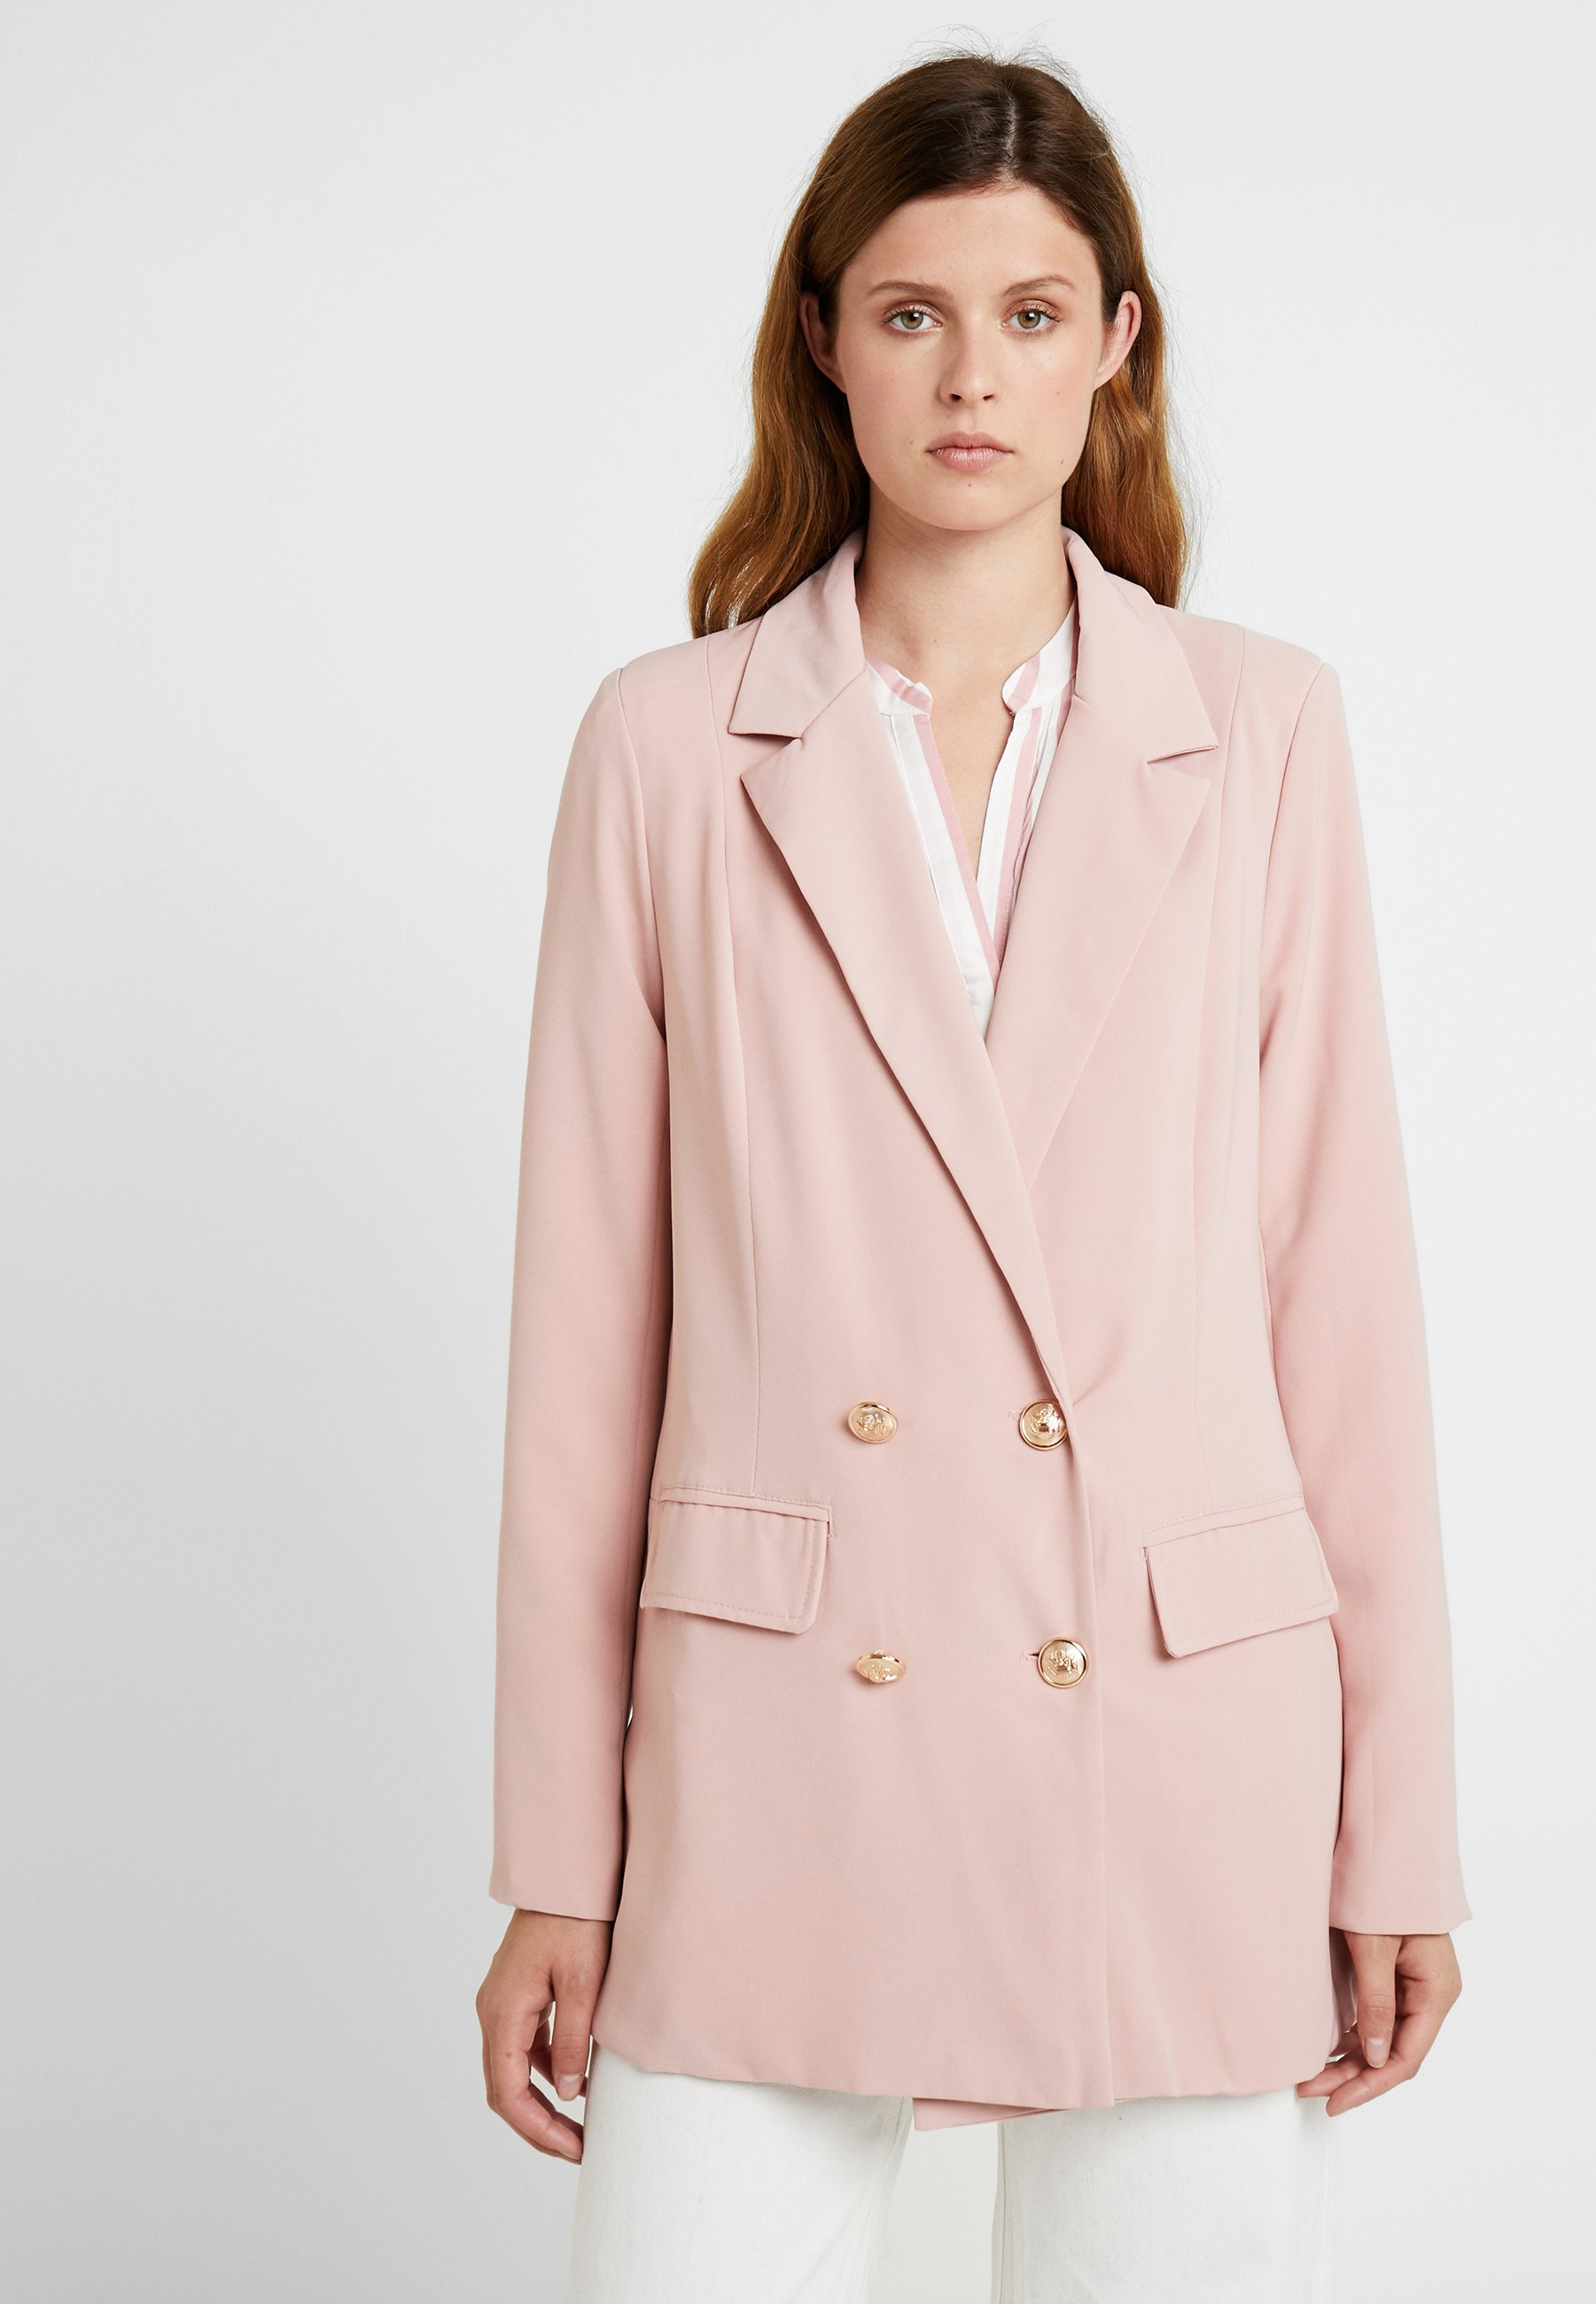 Tall Tall Nude Missguided Tailored LonglineBlazer Tailored Missguided LonglineBlazer Tall Nude Missguided rsdChQt